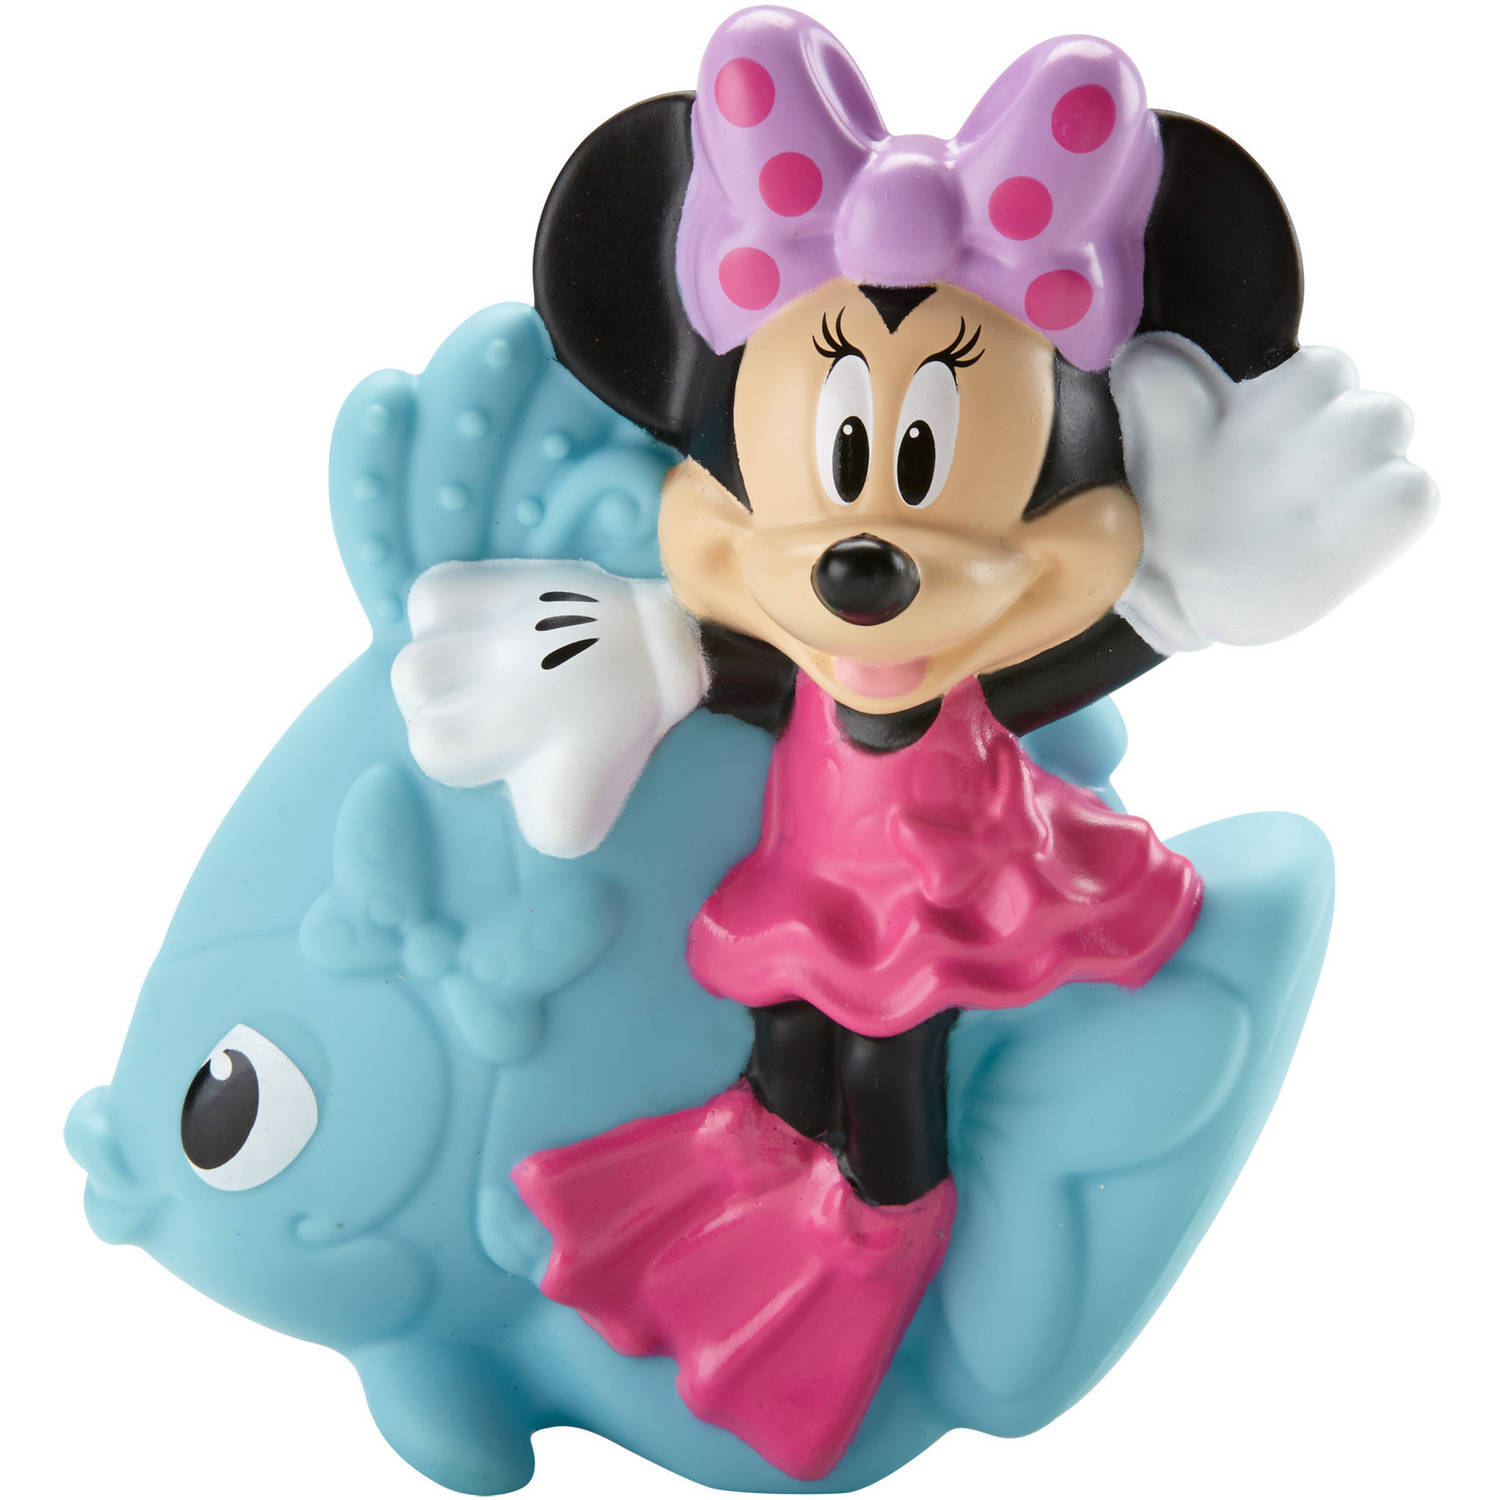 Disney Minnie Mouse Bath Squirter, Minnie by Disney Minnie Mouse